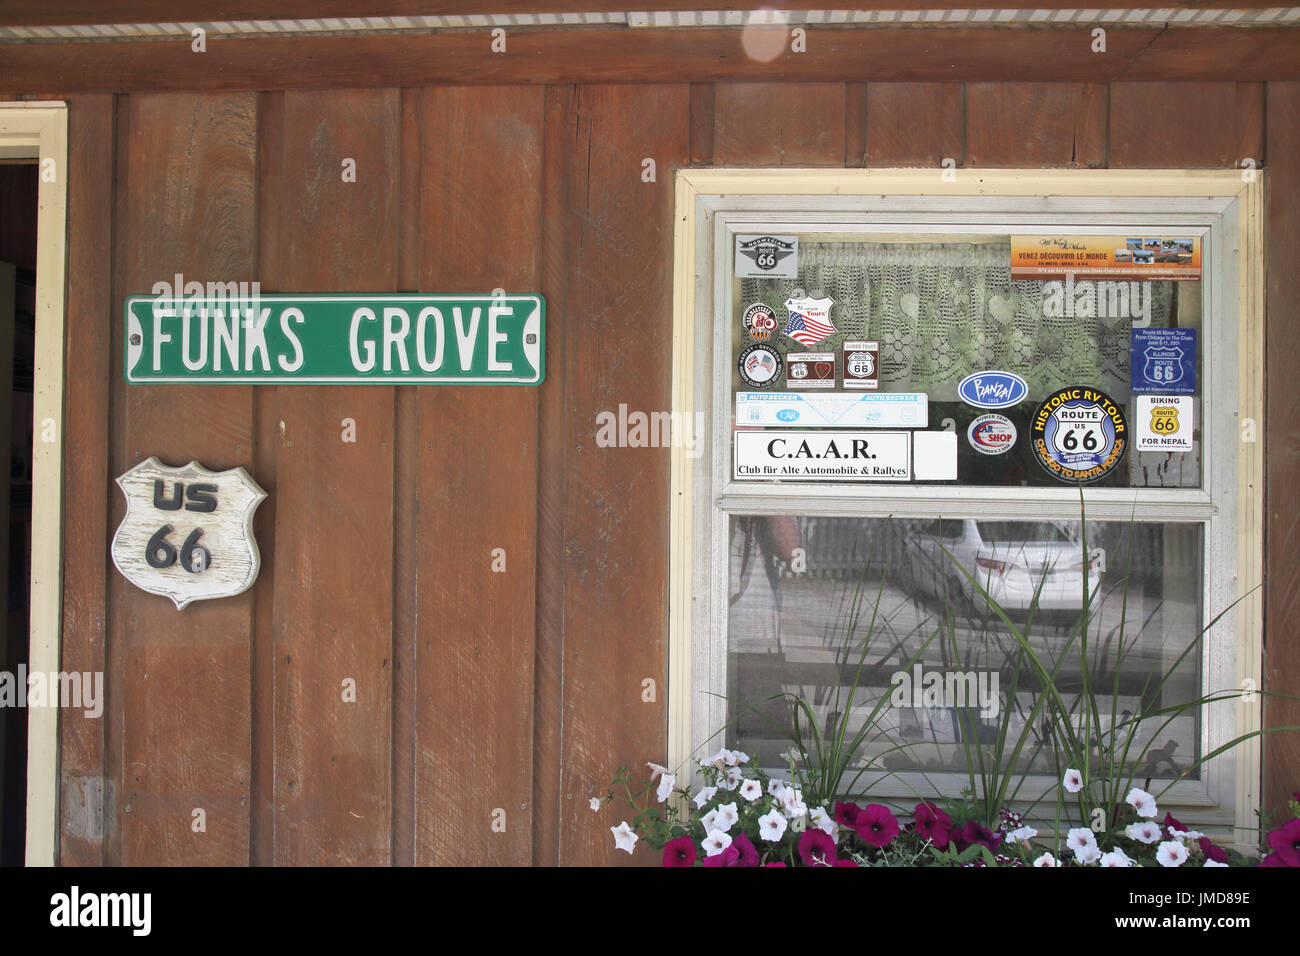 funks grove maple sirup route 66 illinois - Stock Image